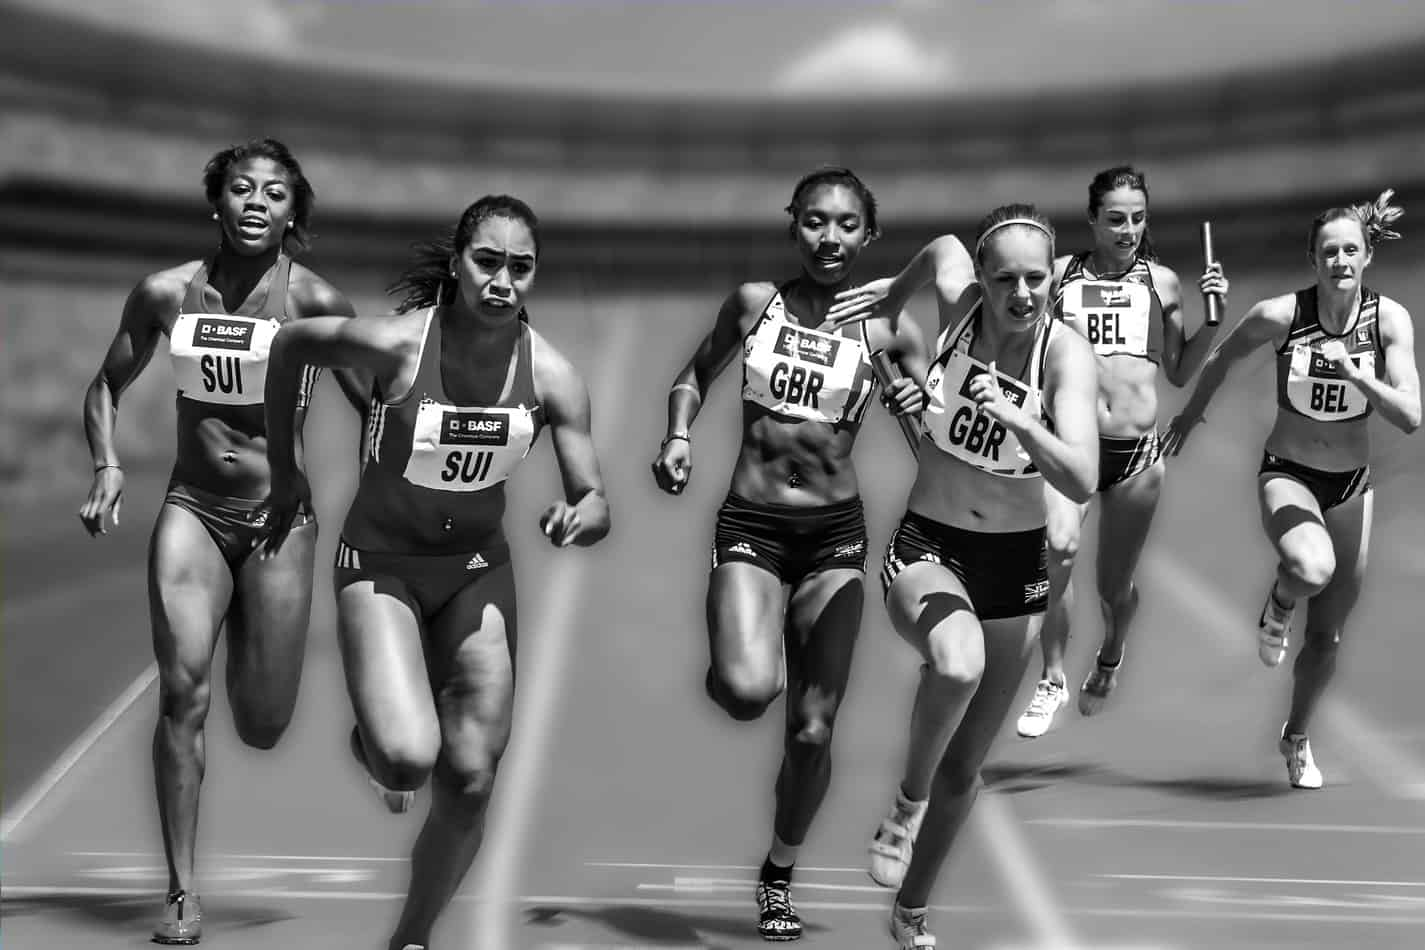 Many people are familiar with a track relay